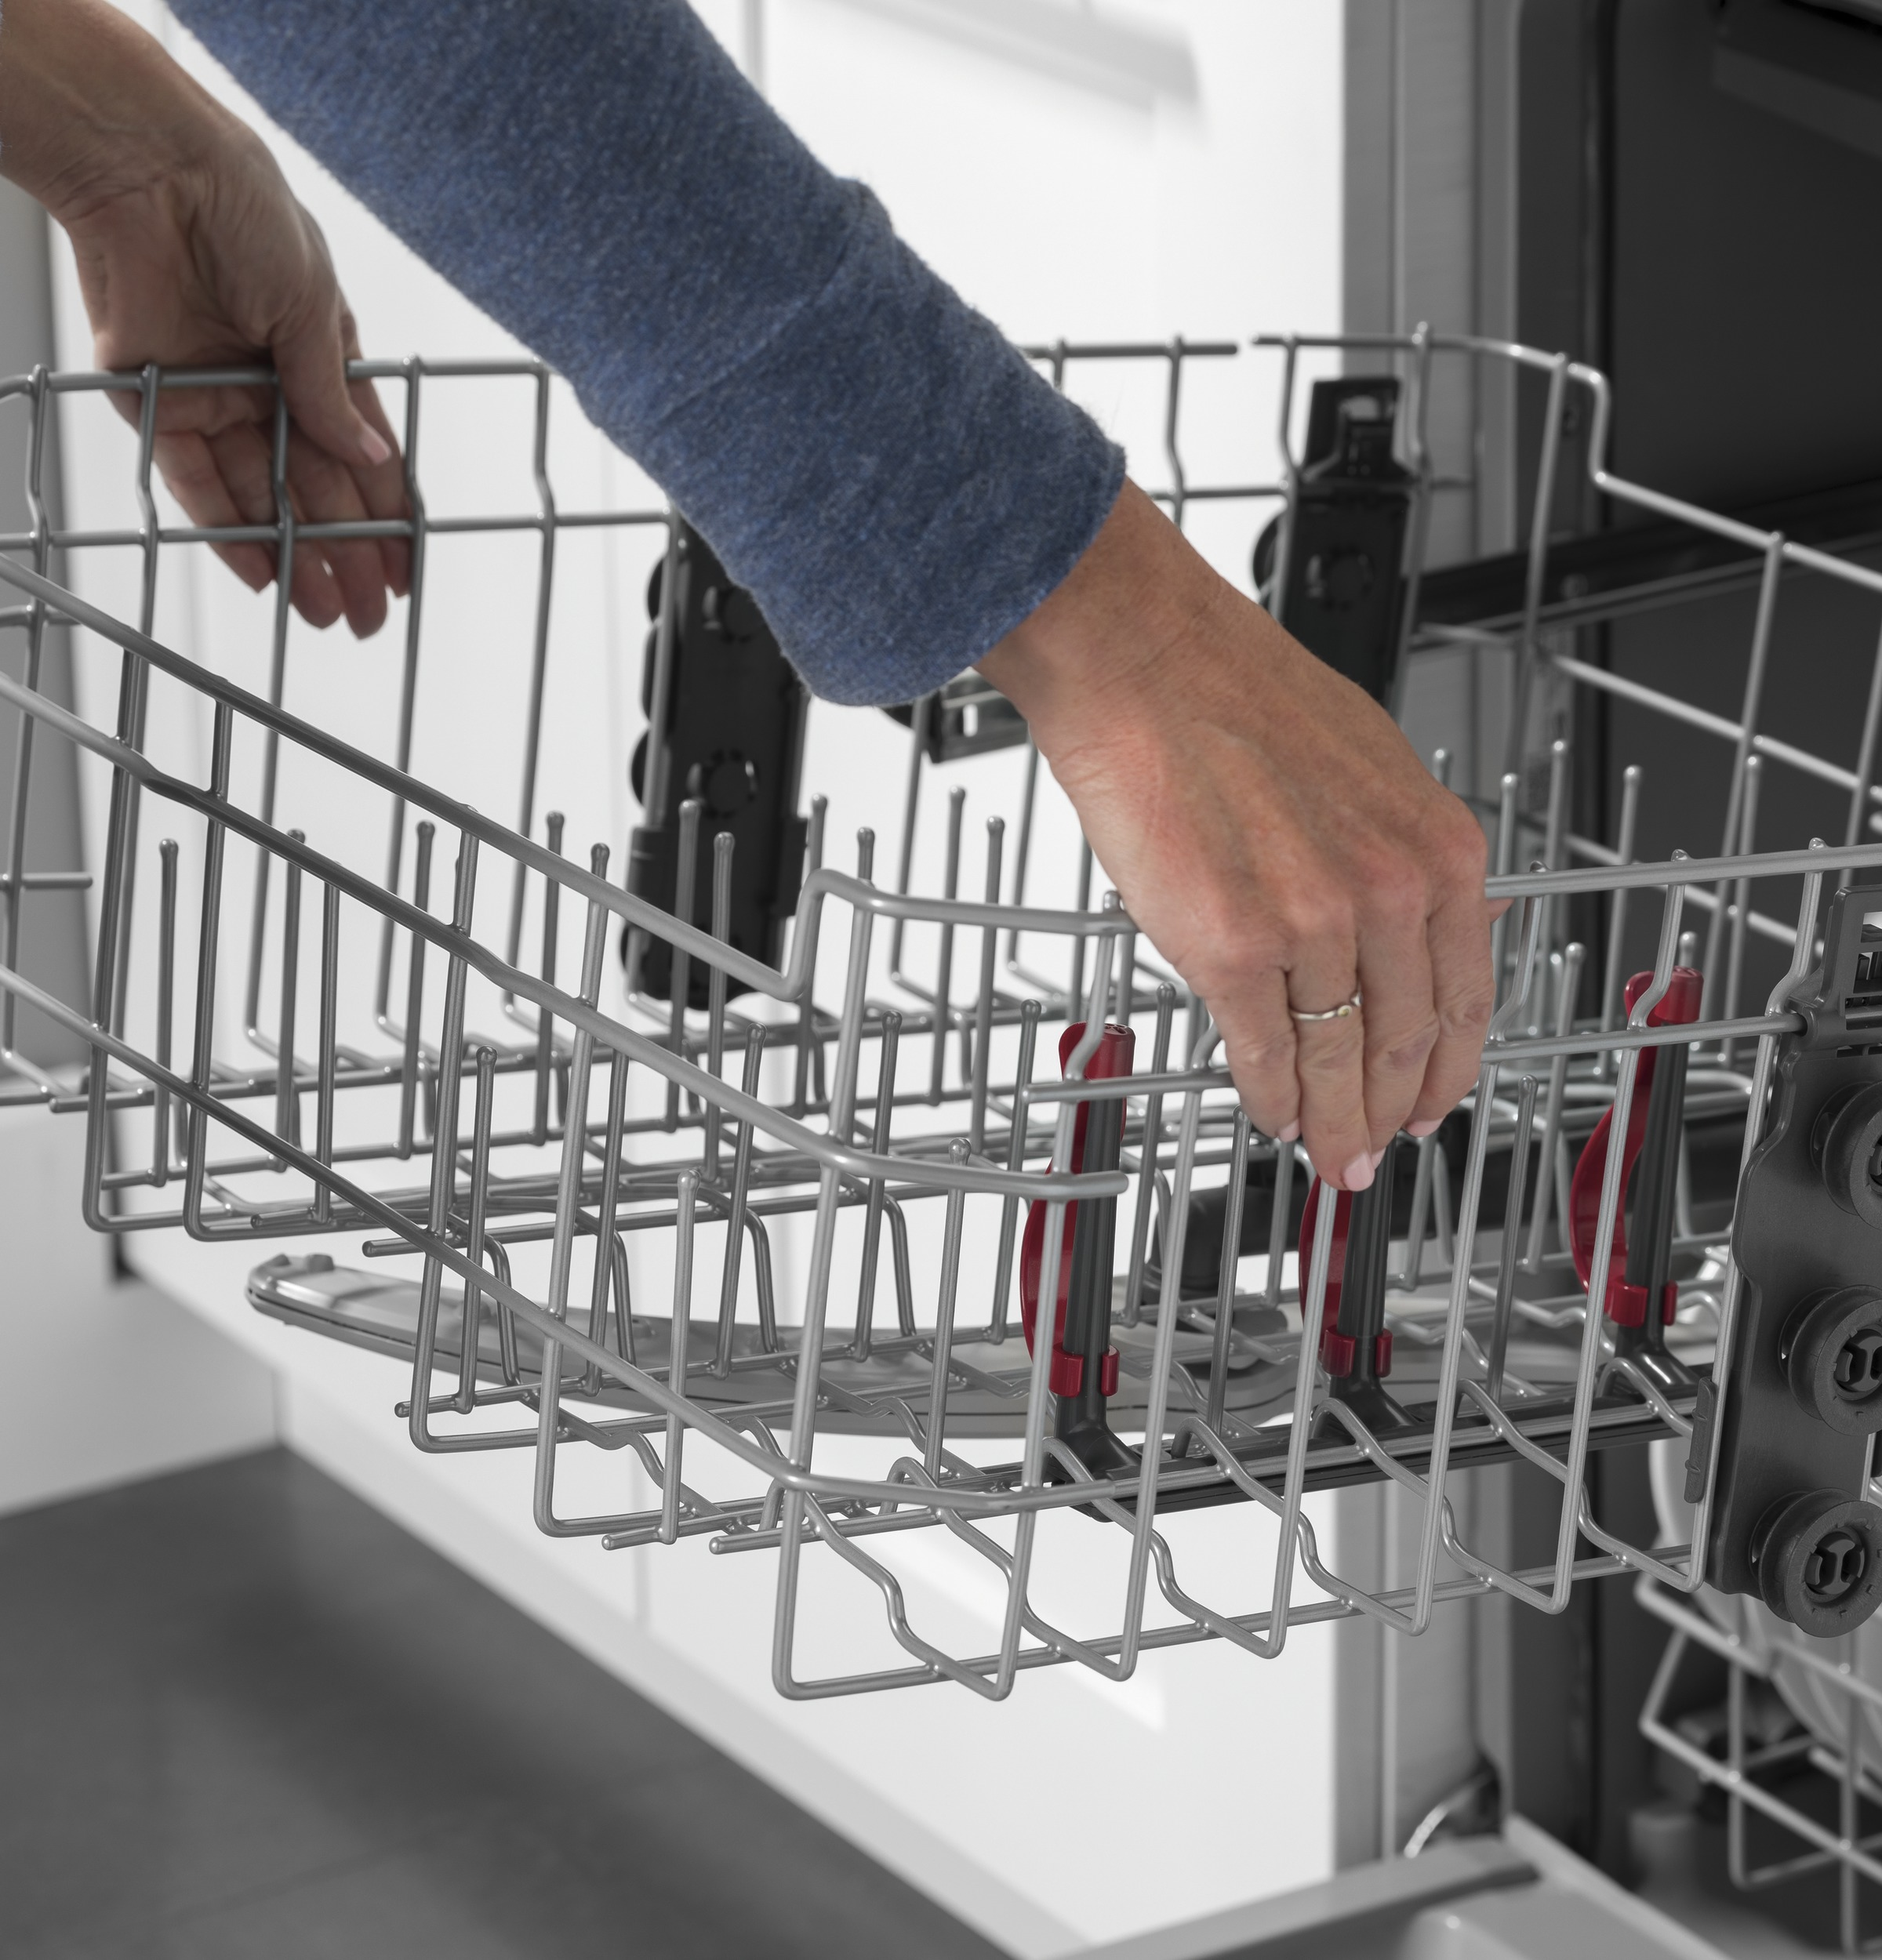 Model: GDT605PGMBB | GE GE® Top Control with Plastic Interior Dishwasher with Sanitize Cycle & Dry Boost